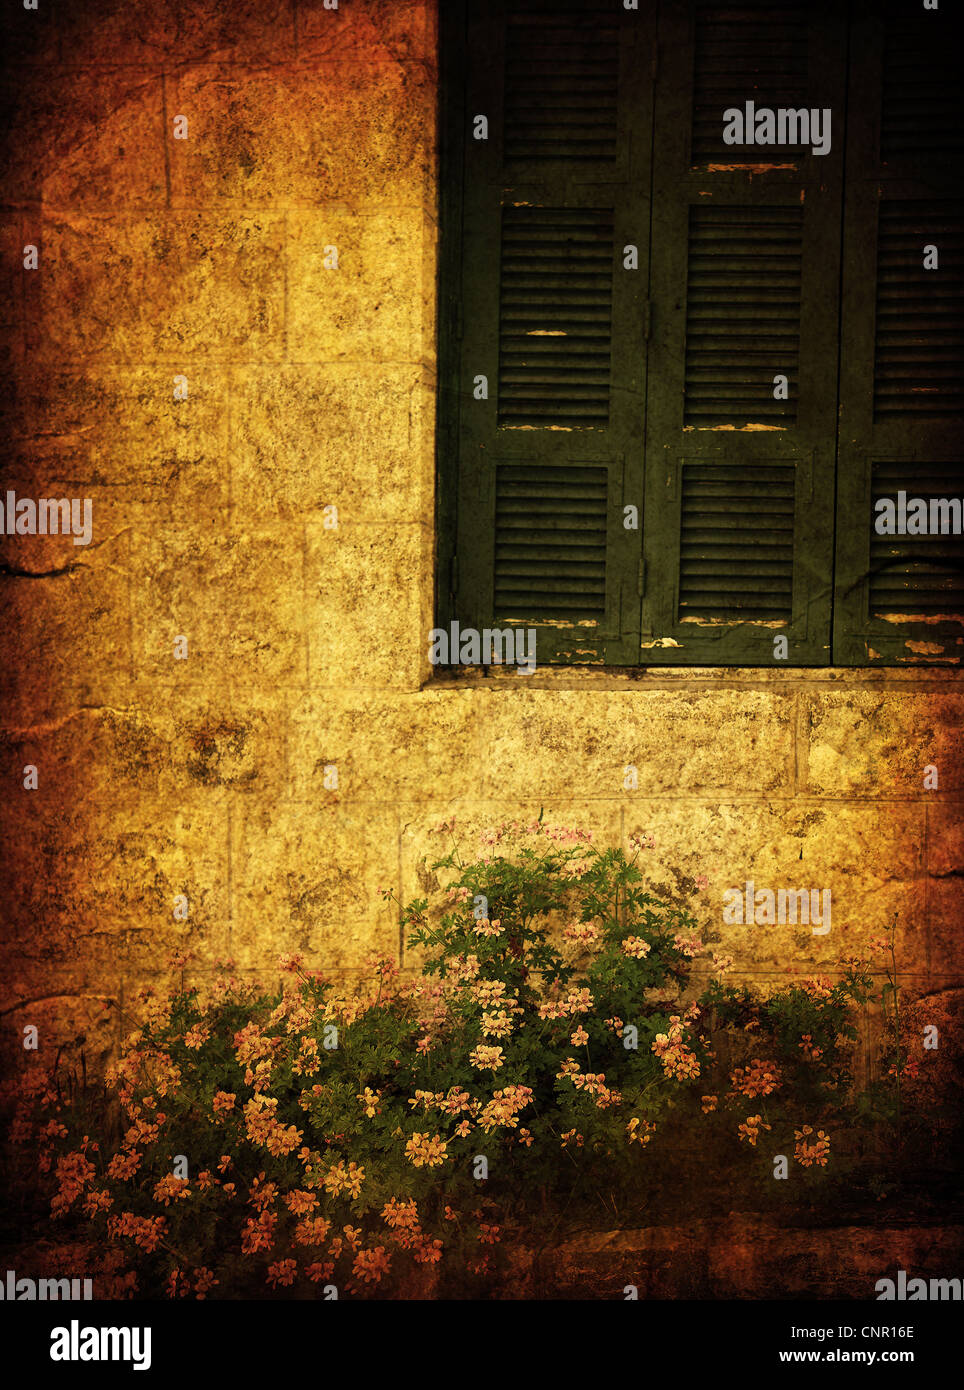 Old house grunge photo of window & flowers - Stock Image